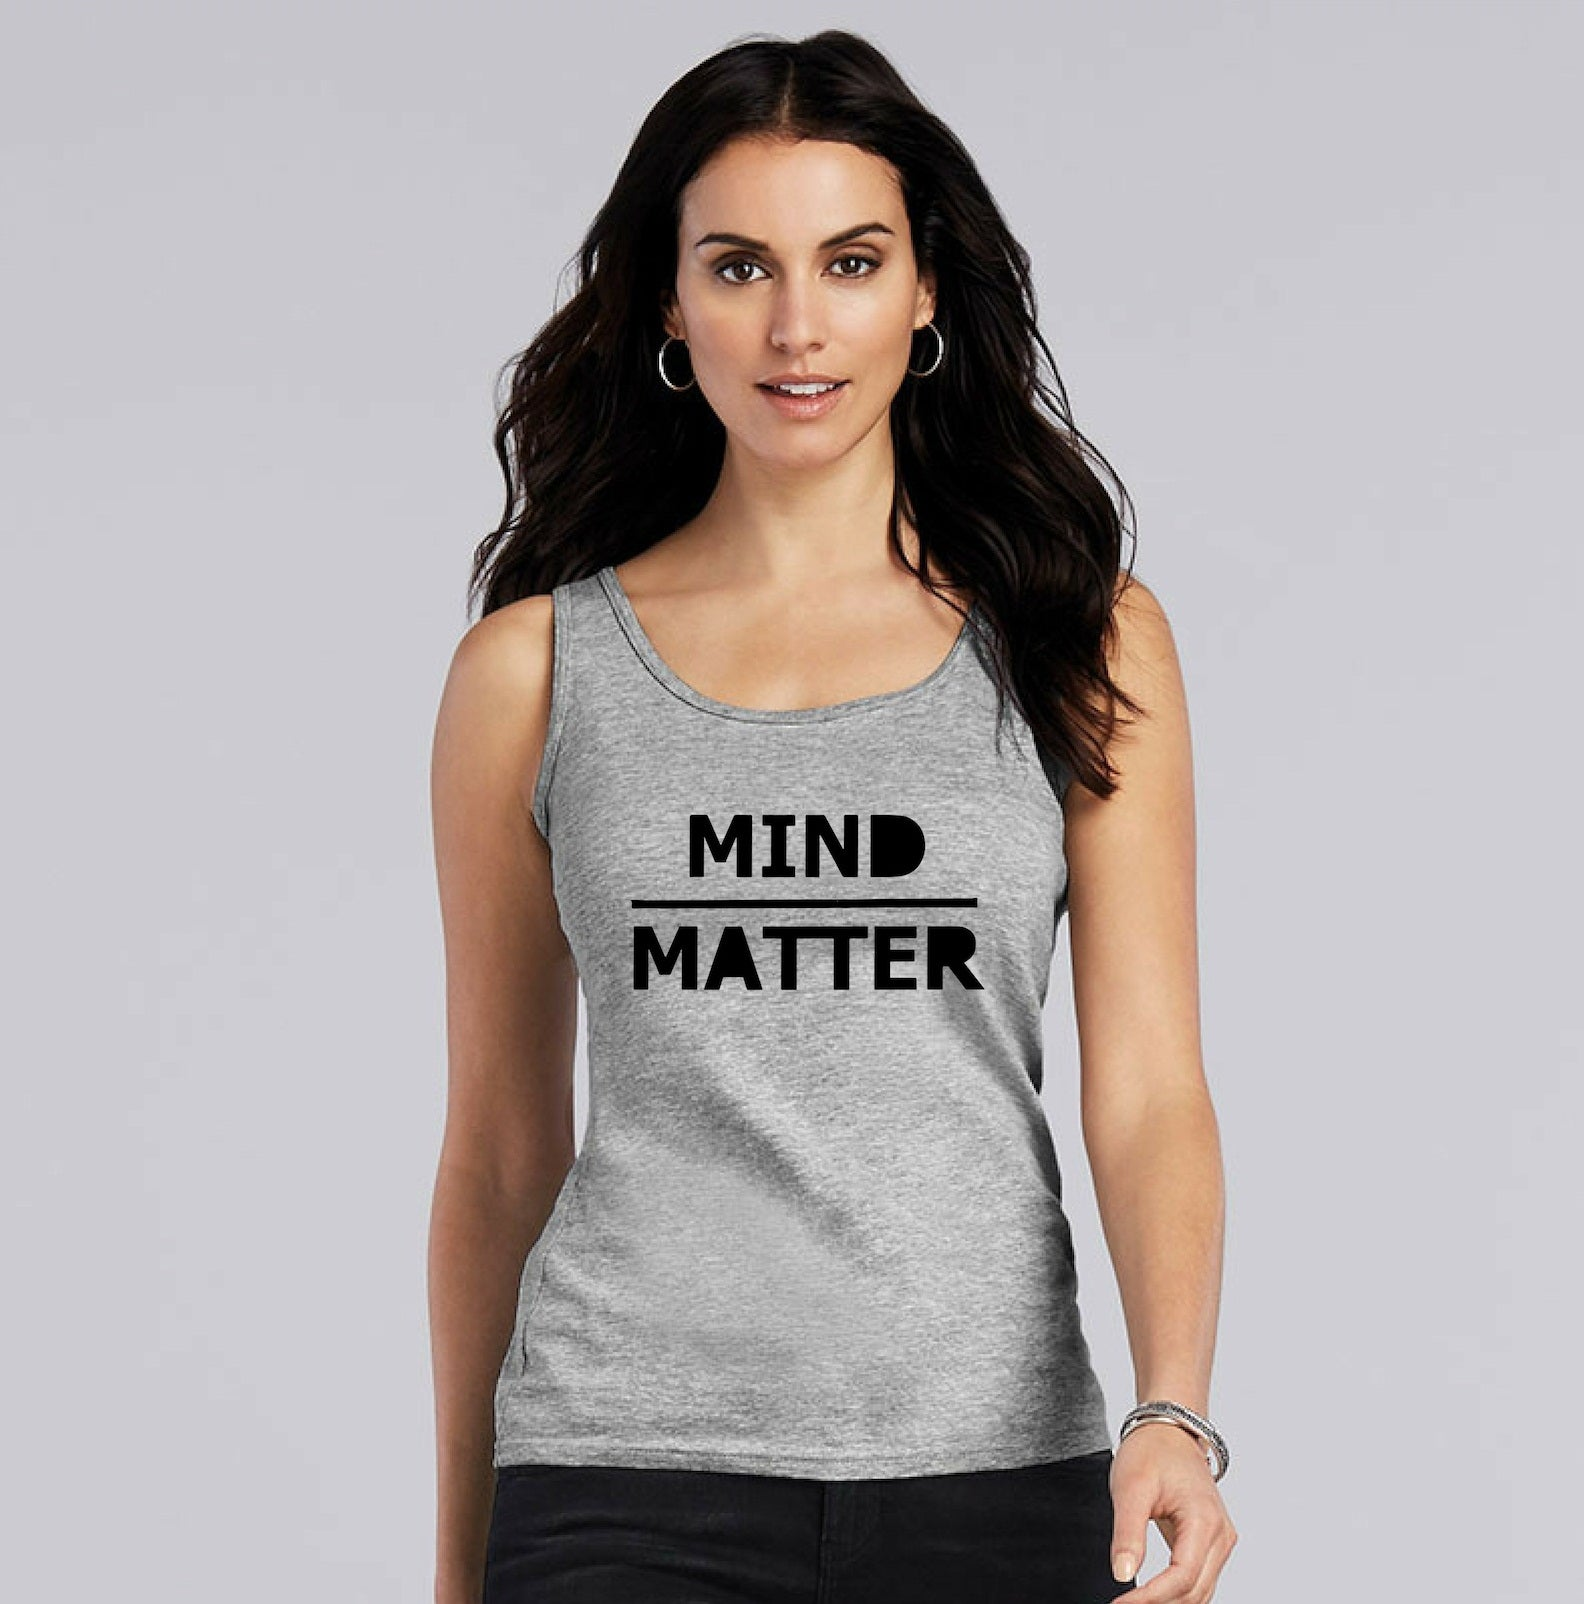 Mind Over Matter Women's Tank